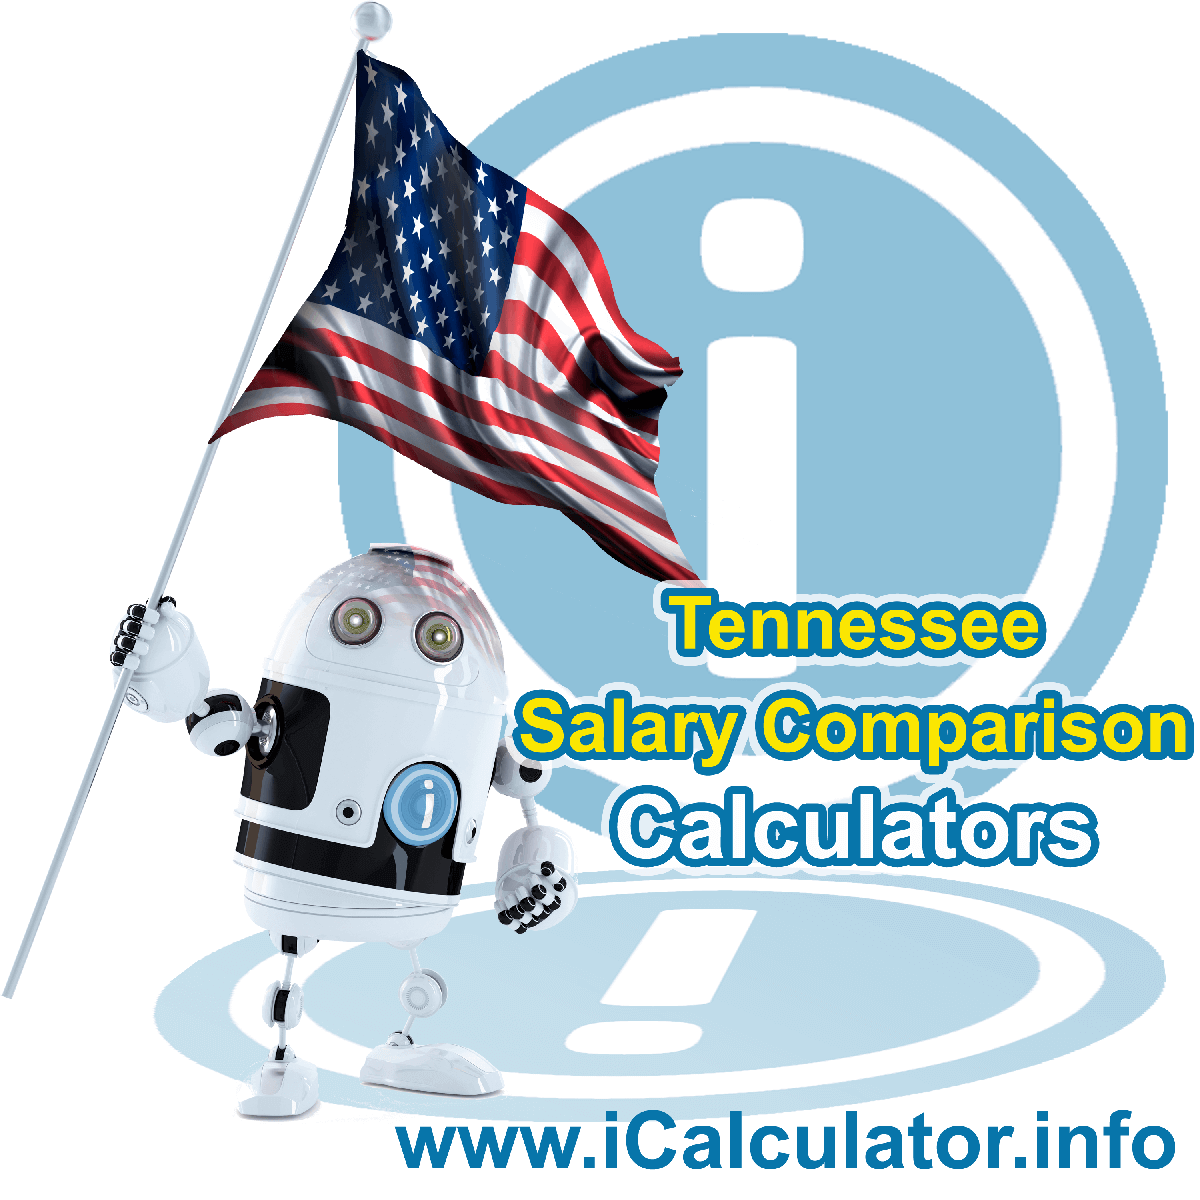 Tennessee Salary Comparison Calculator 2019 | iCalculator | The Tennessee Salary Comparison Calculator allows you to quickly calculate and compare upto 6 salaries in Tennessee or between other states for the 2019 tax year and historical tax years. Its an excellent tool for jobseekers, pay raise comparison and comparison of salaries between different US States